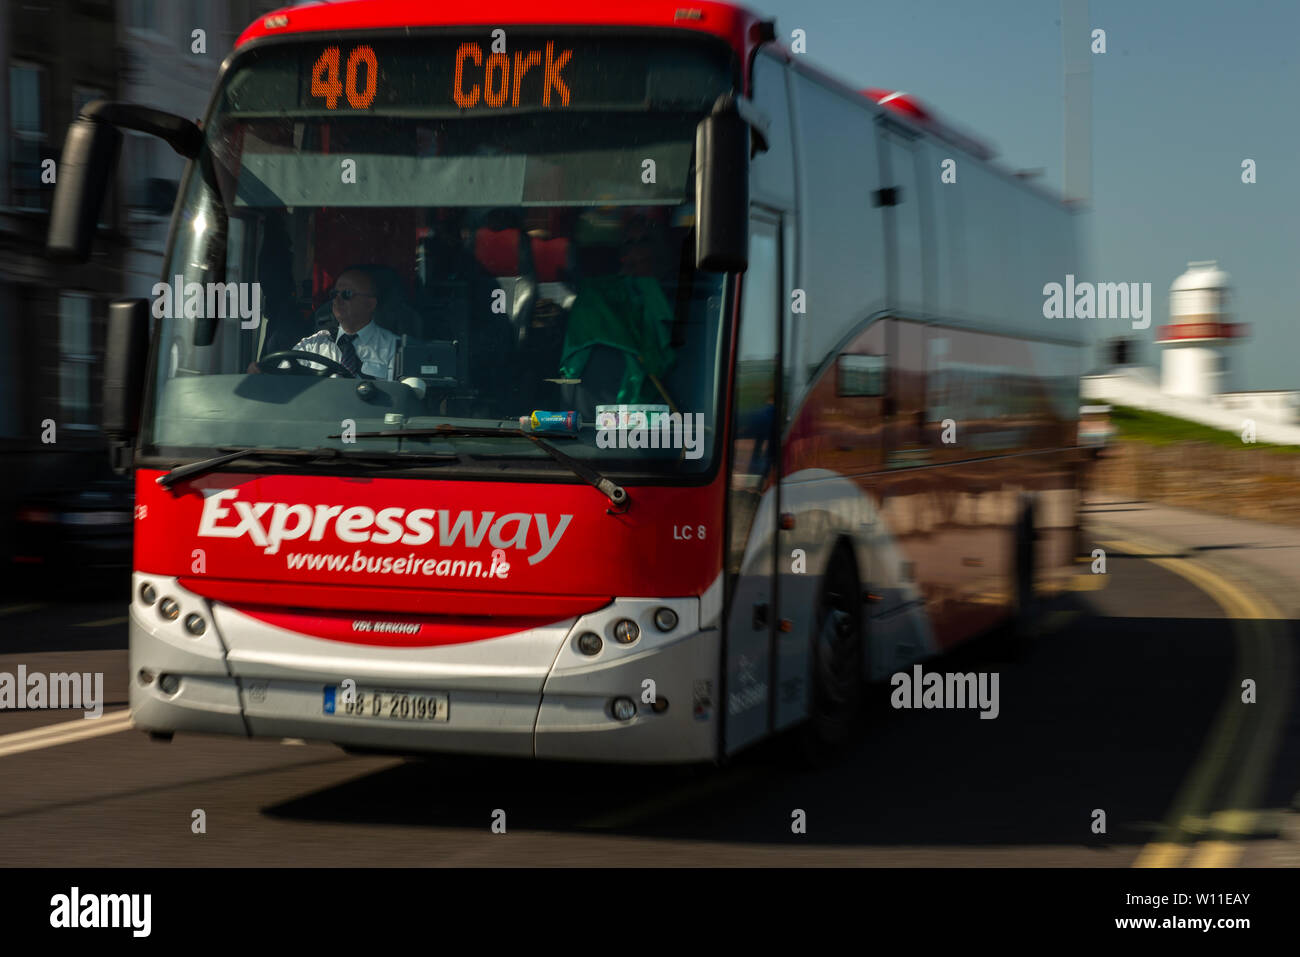 Youghal, County Cork, Ireland  27 June 2019  Expressway coach by Bus